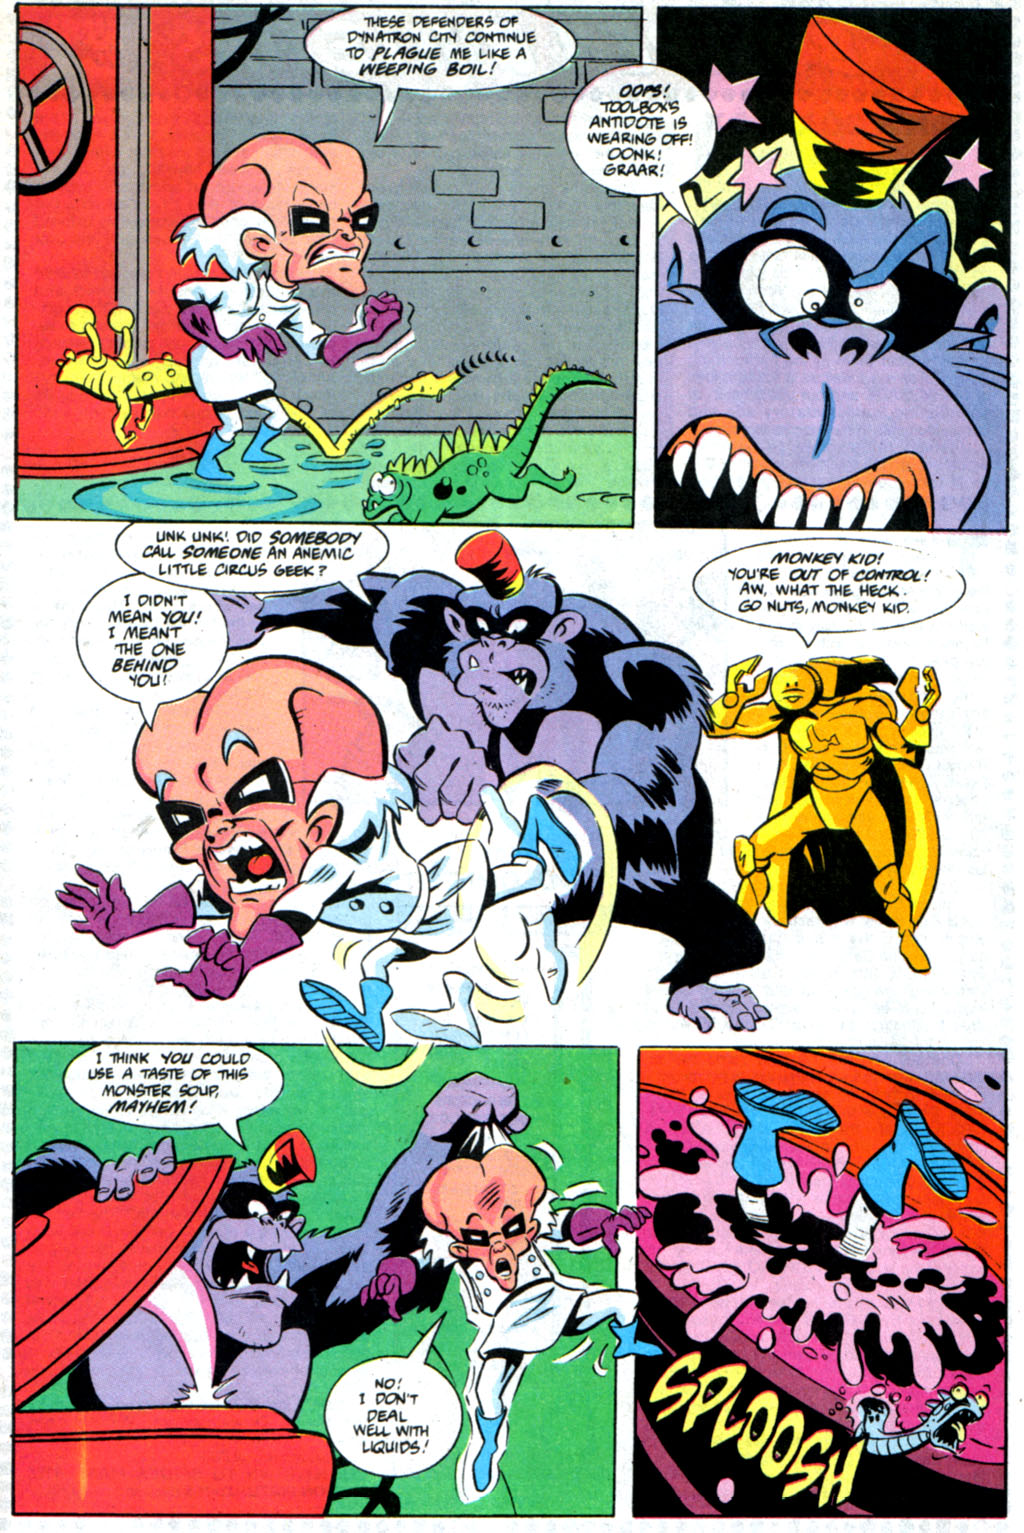 Read online Defenders of Dynatron City comic -  Issue #6 - 20